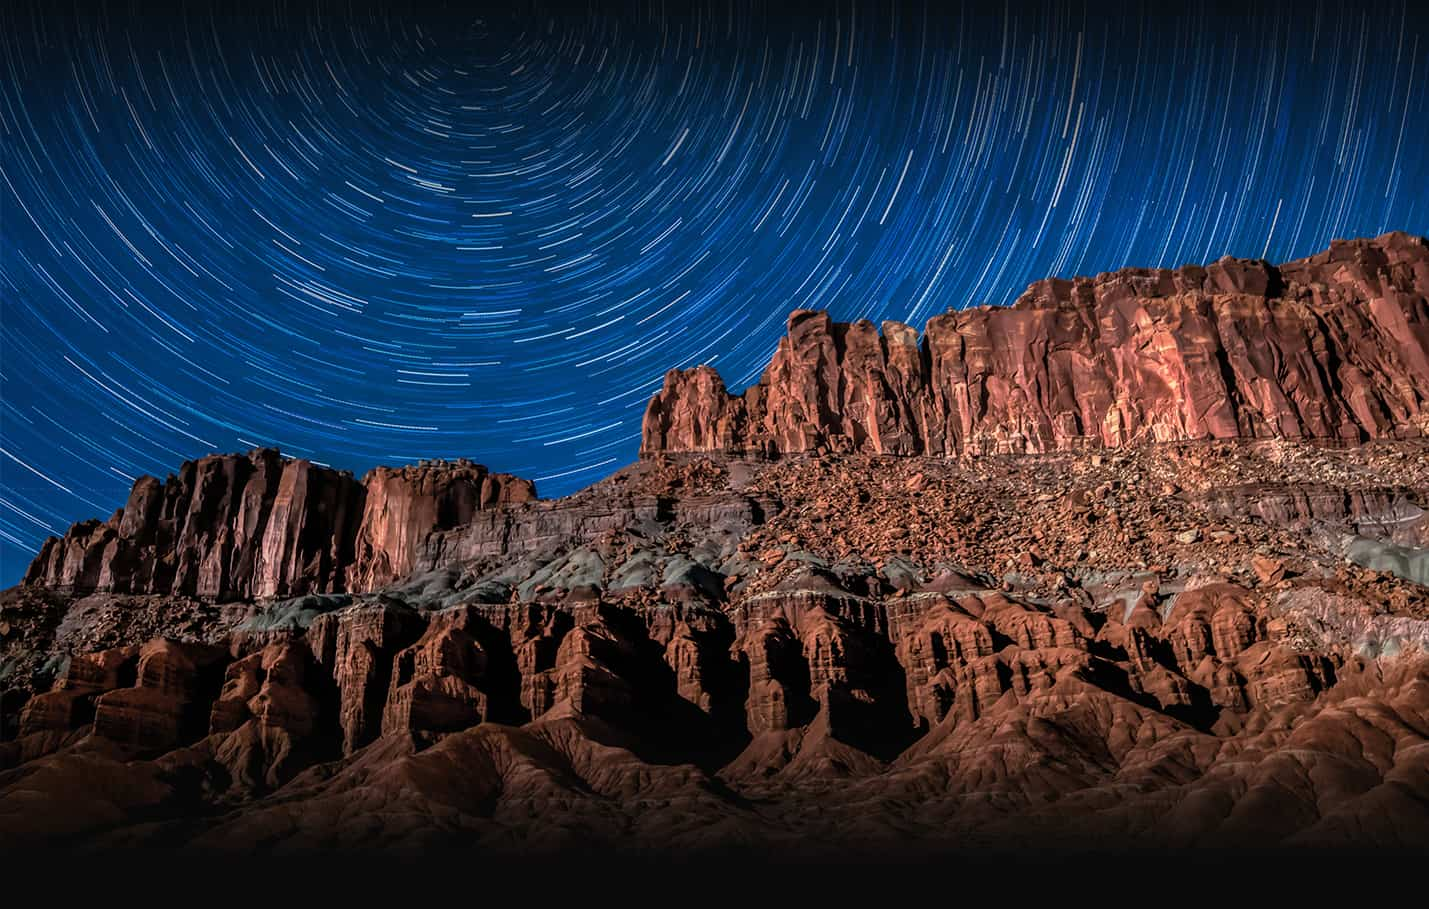 11:30 PM, Capitol Reef National Park, Chimney Rock and Star Circles